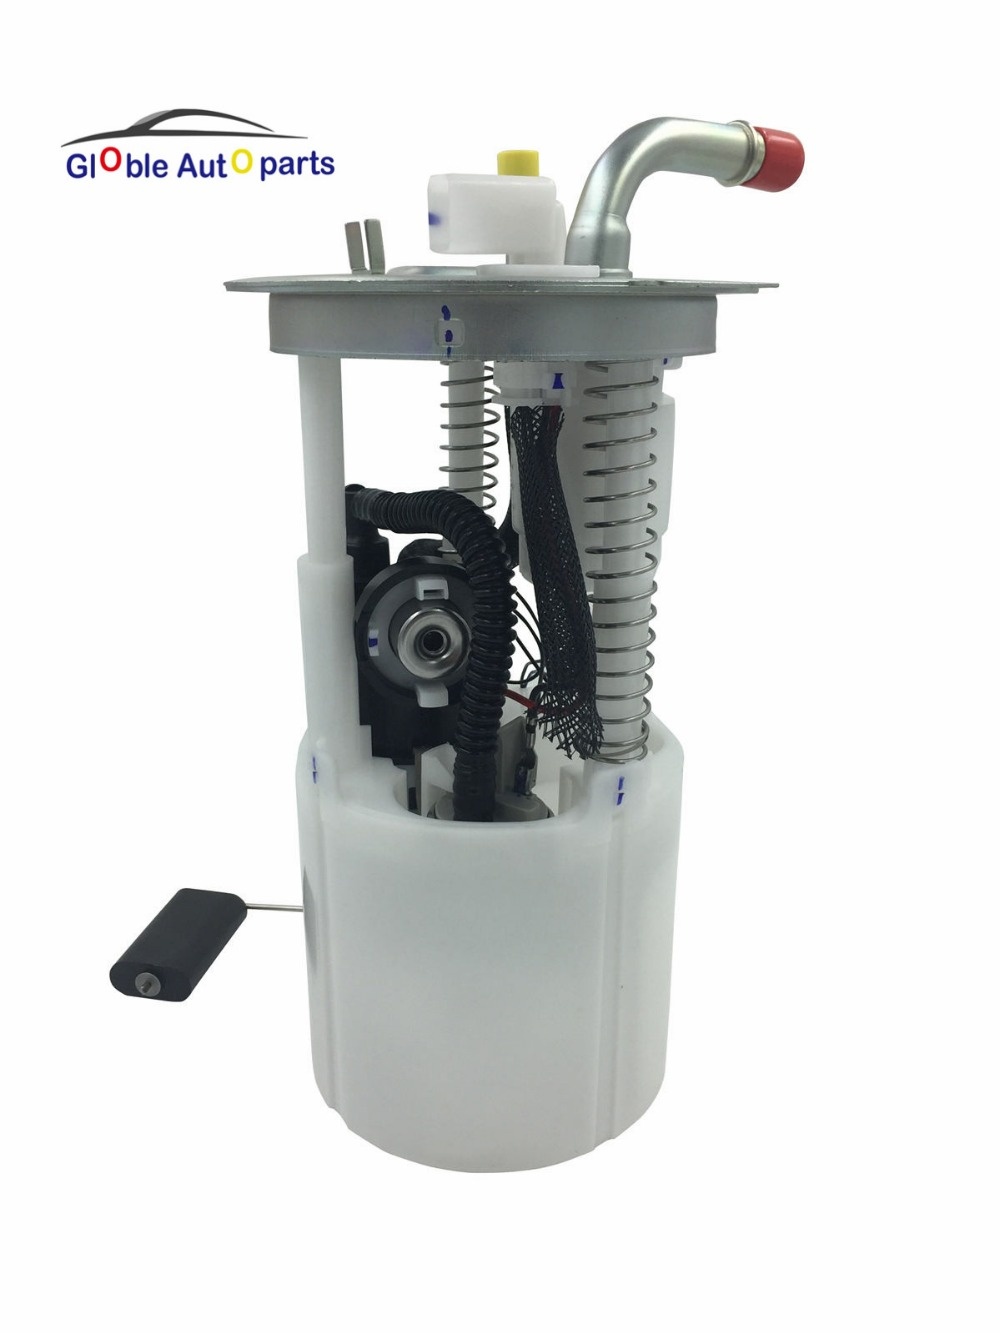 Fuel Pump Module Assembly For Chevy Trailblazer Ext Buick Rainier 2007 Filter Gmc Envoy Isuzu Ascender Saab 9 7x 05 07 E3707m Ty 707 In Pumps From Automobiles